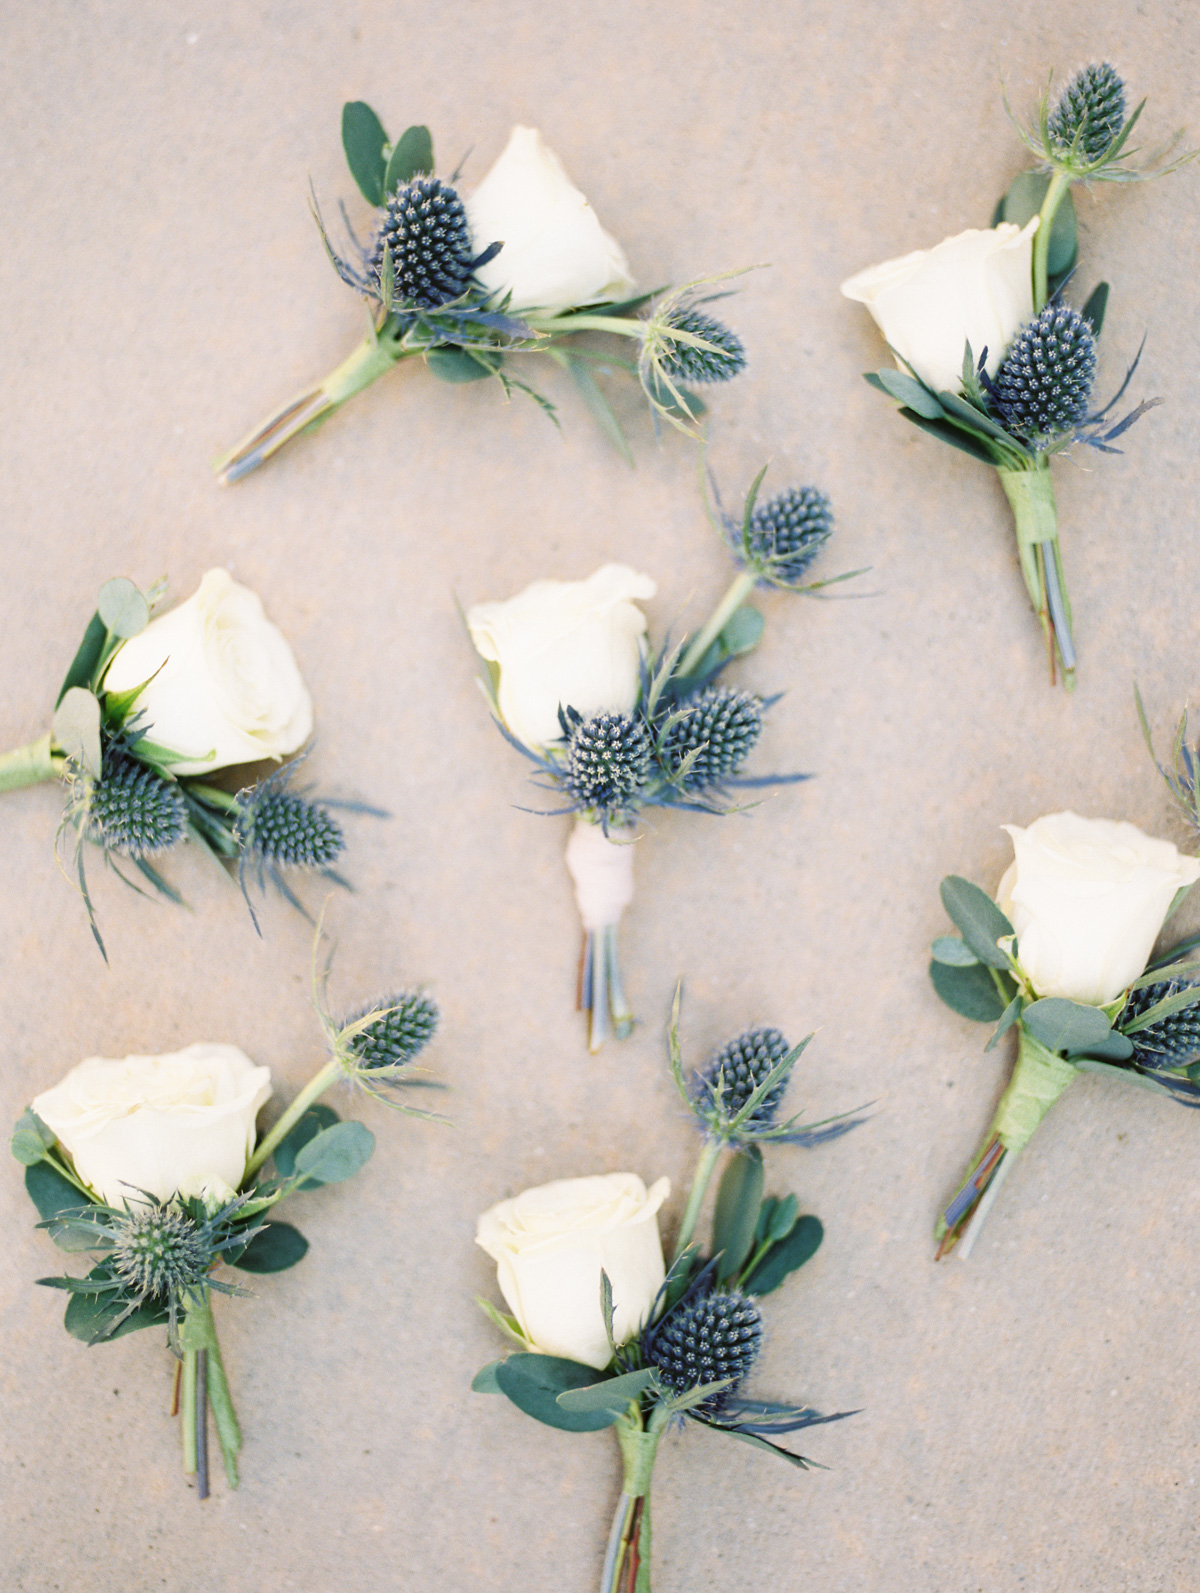 Lovely blue thistle boutonniere's by Soriee Design and Events   Harrison & Jocelyne's gorgeous Temecula wedding at Wiens Family Cellars captured by Betsy & John Photography